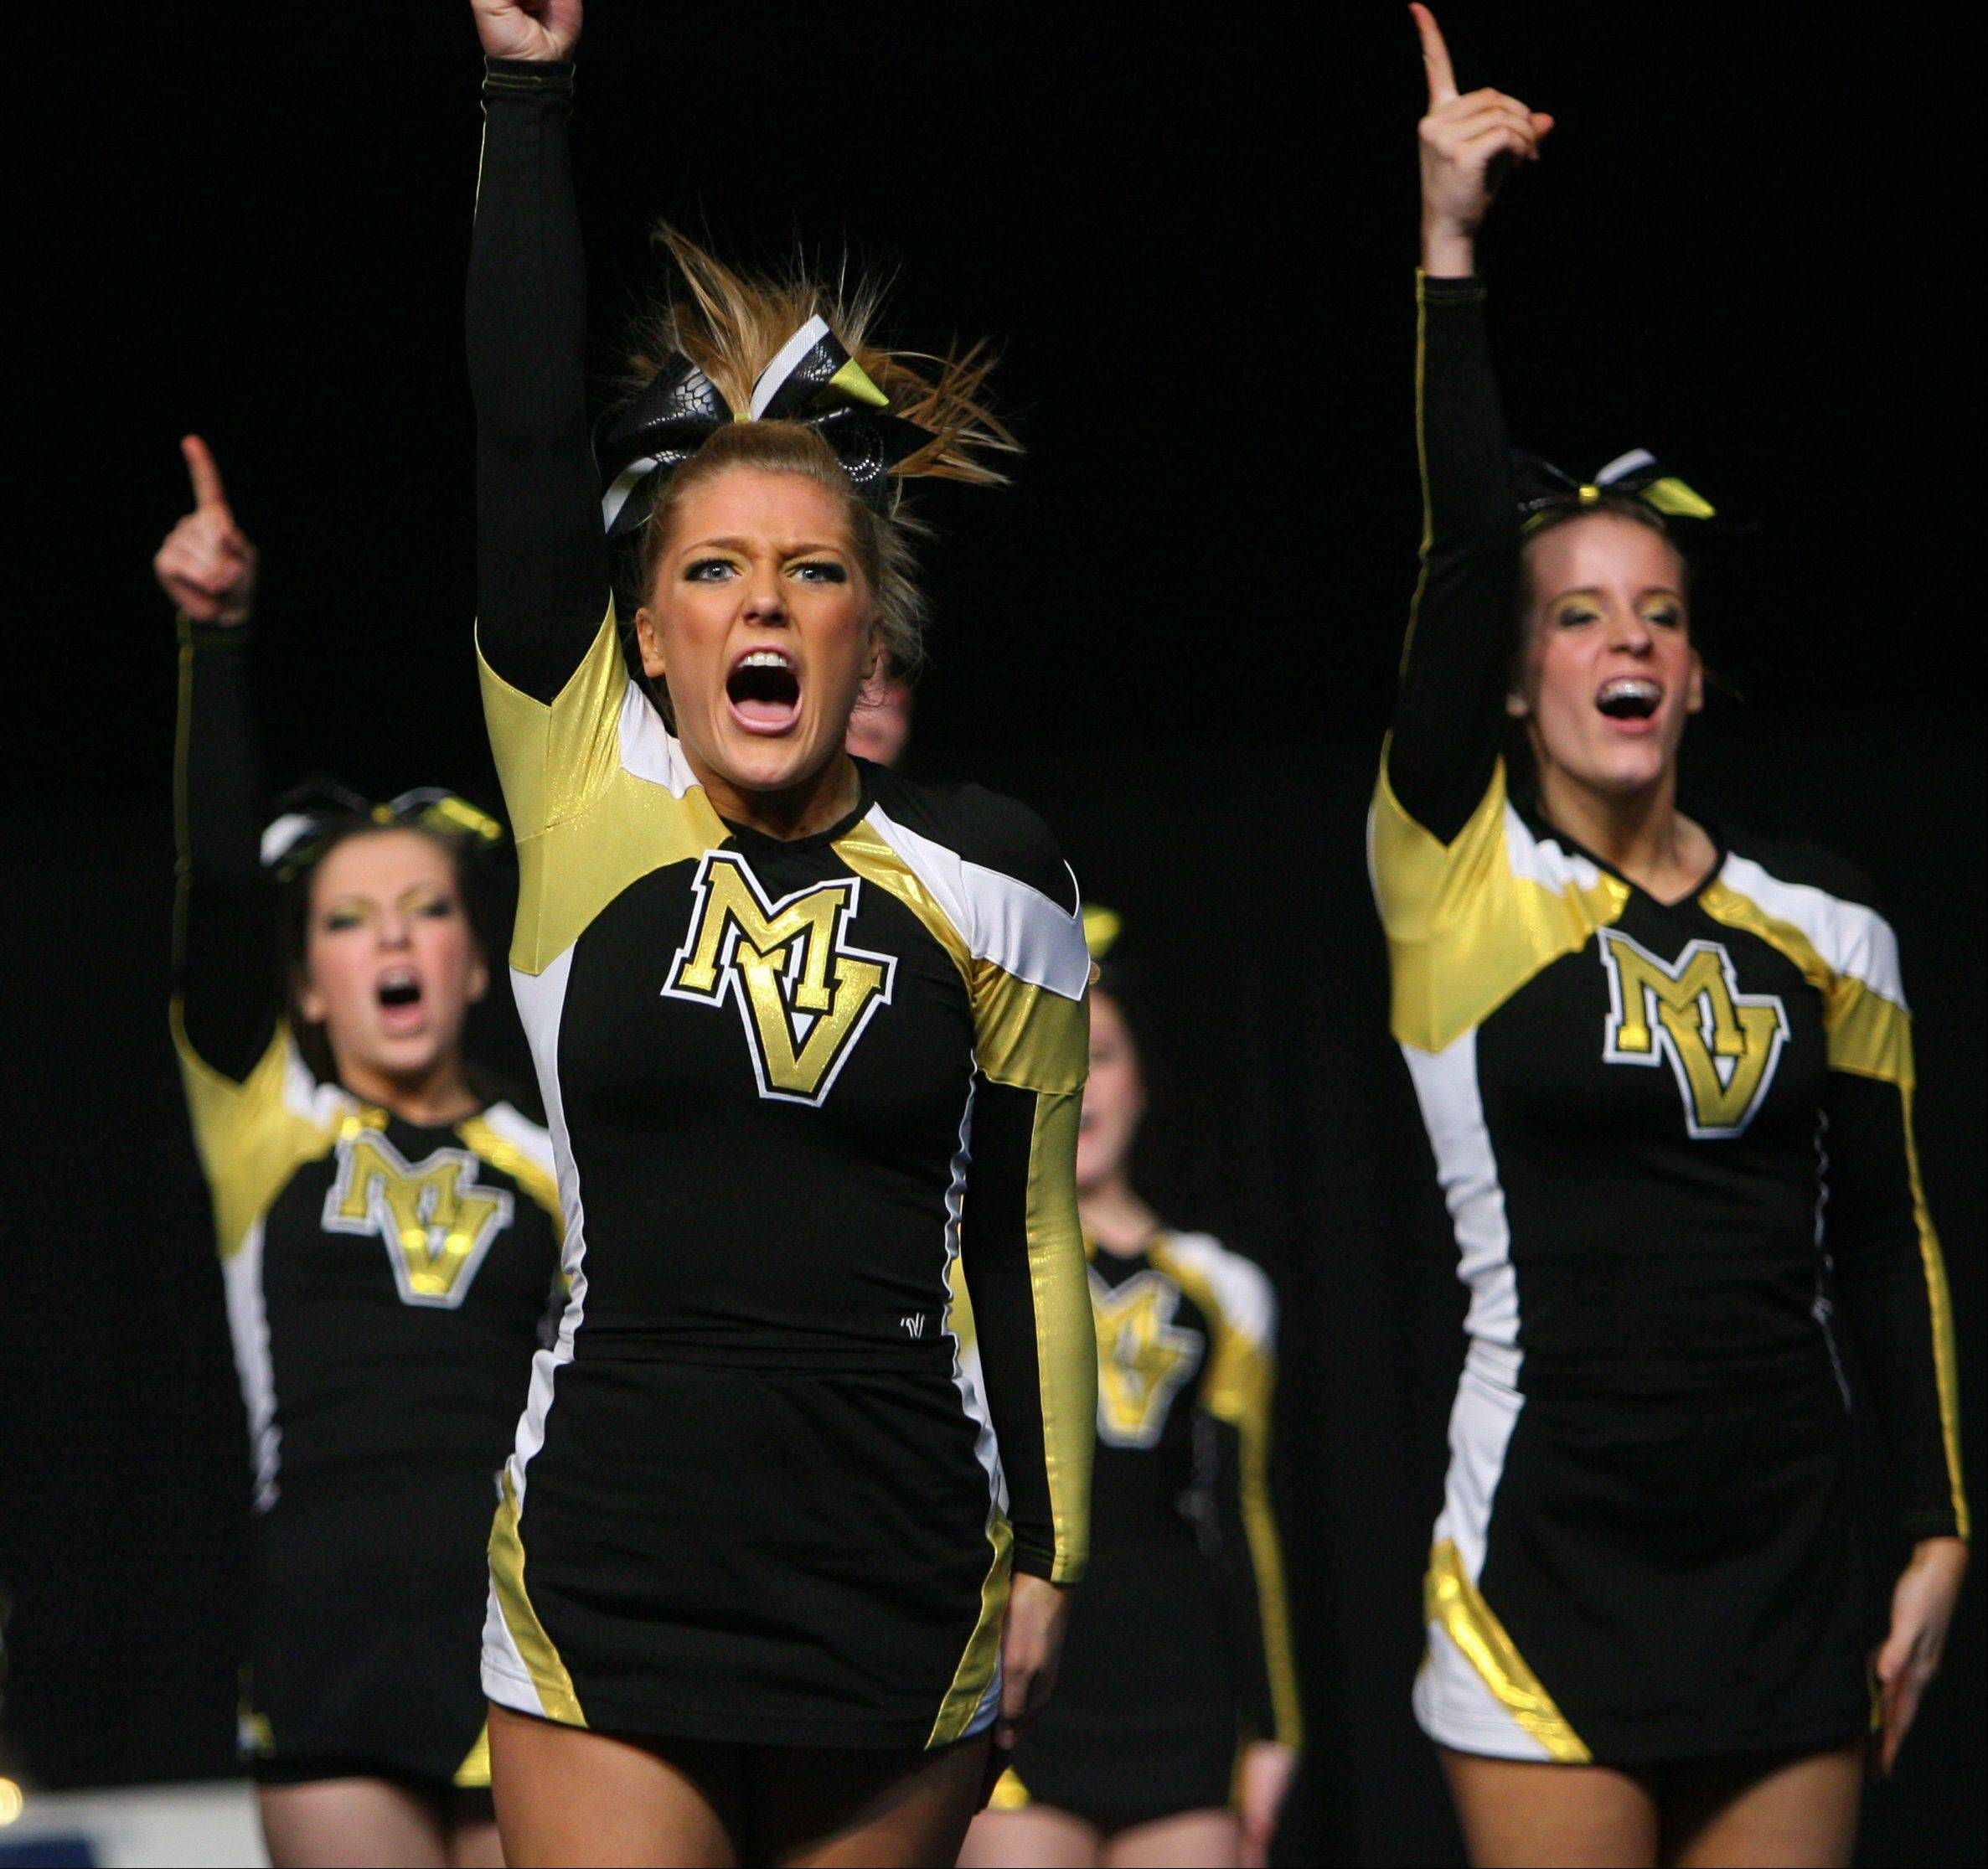 Metea Valley High School cheerleaders competes in the state championships Friday.